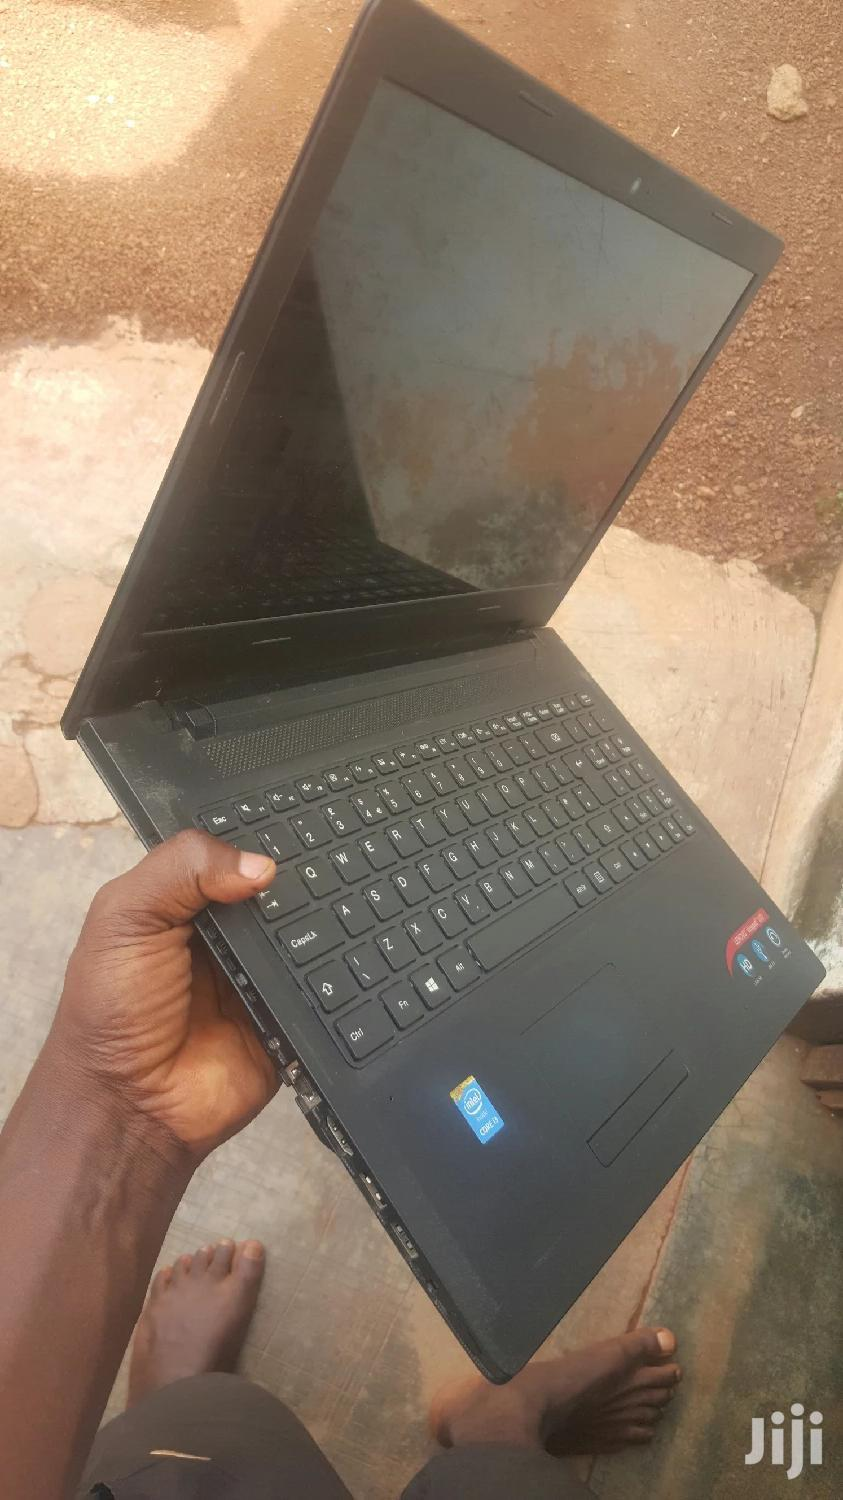 Laptop Lenovo ThinkPad X240 4GB Intel Core I3 HDD 500GB | Laptops & Computers for sale in Tamale Municipal, Northern Region, Ghana